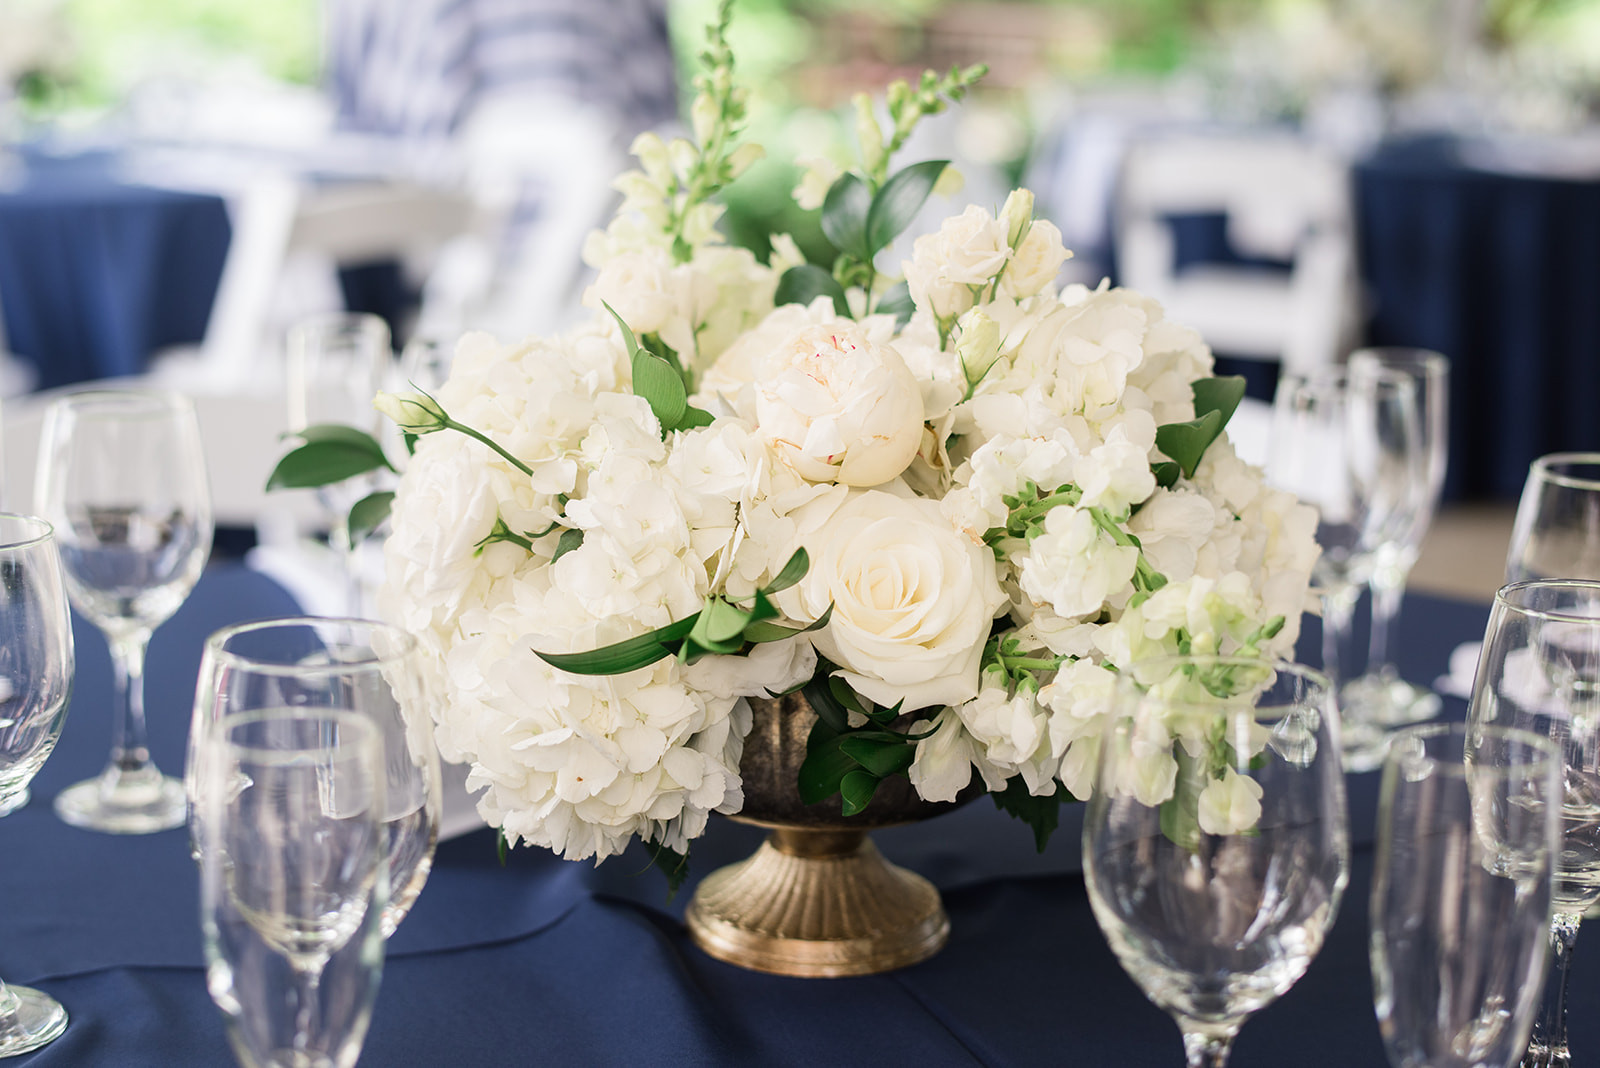 Samara-Alec-White-Centerpiece-Charming-G